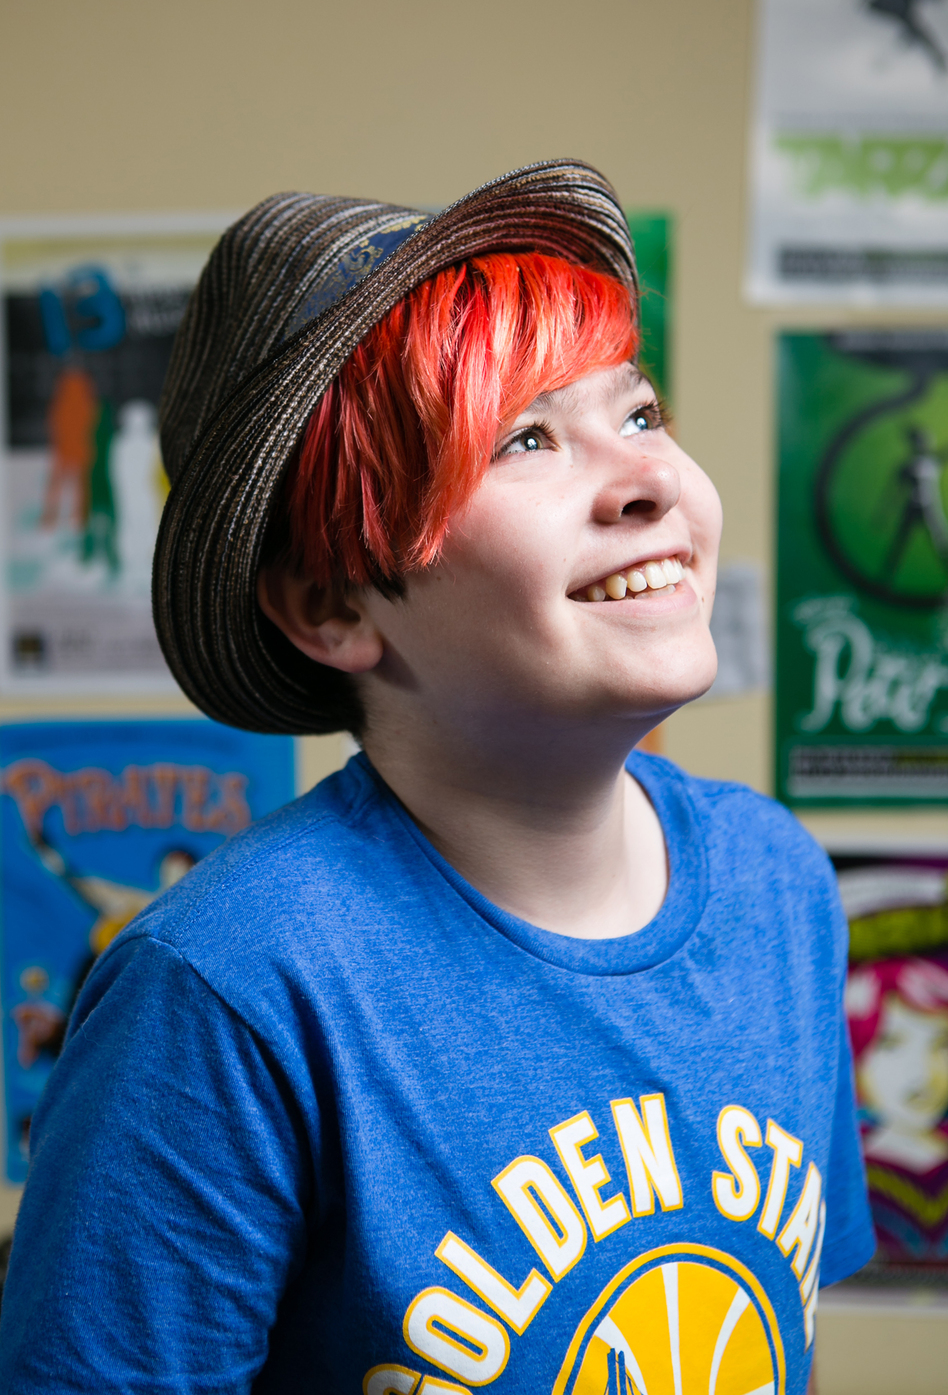 Max, 13 years old, identifies as agender — neither male nor female. (Bert Johnson/KQED)